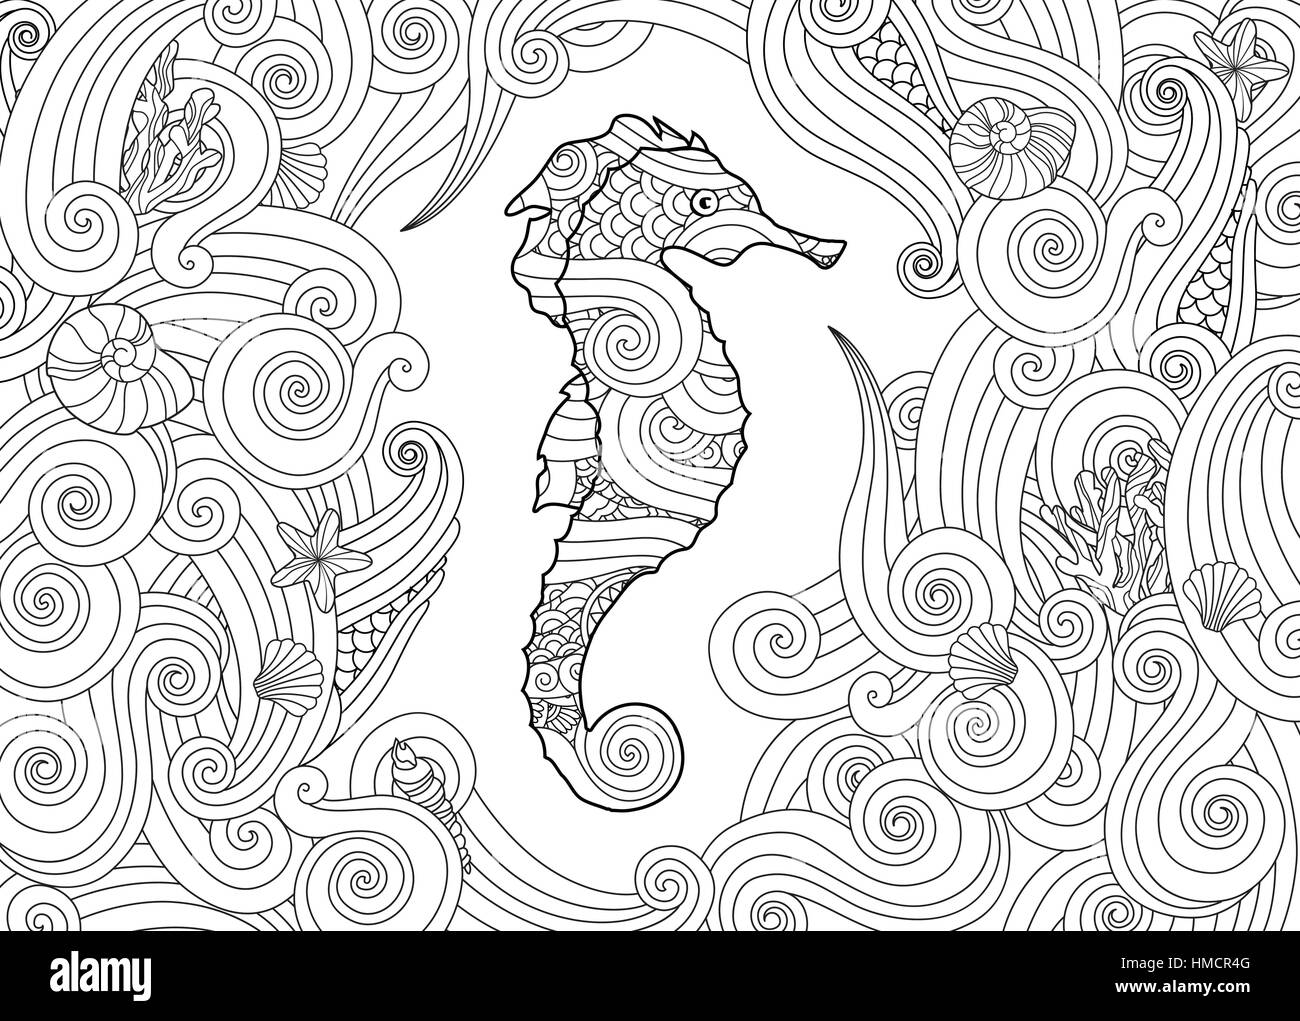 Hand Drawn Sketch Of Seahorse Surrounded By Waves In Zentangle Inspired Style